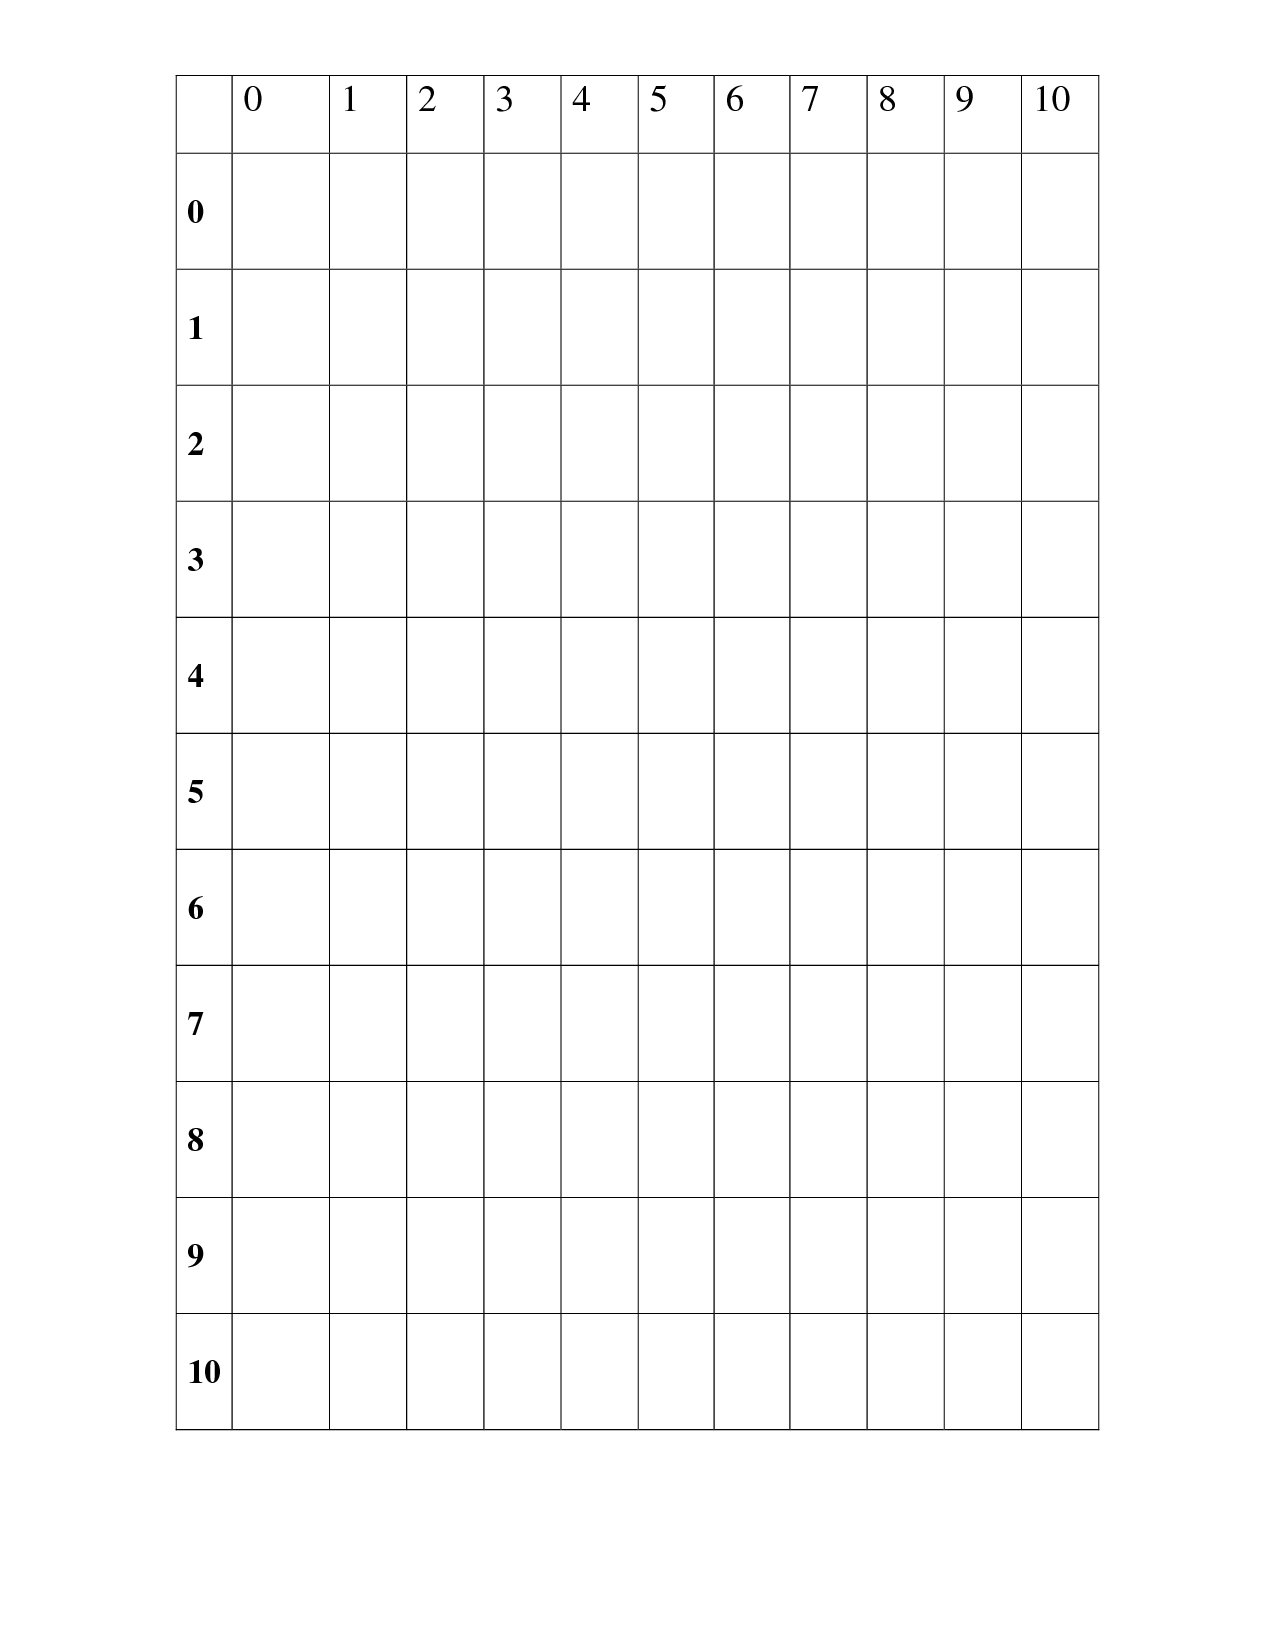 30 Images Of Printable Multiplication Chart Blank Template within Printable Multiplication Chart Blank